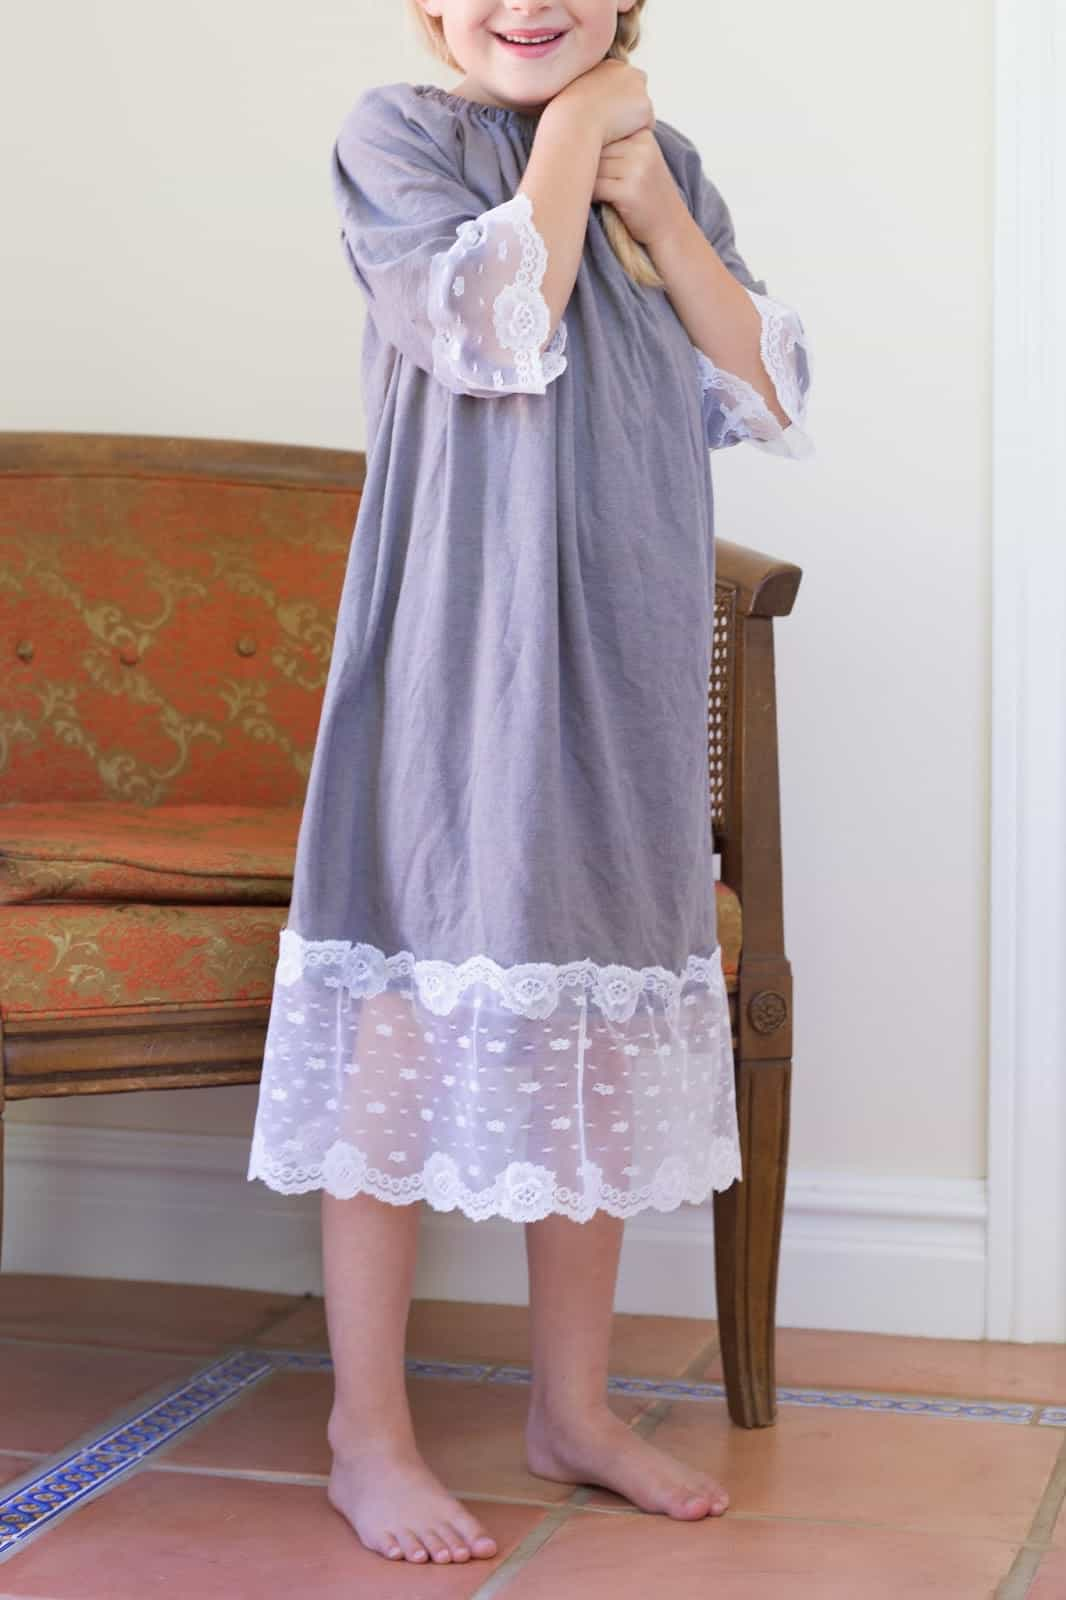 Kids' lace trimmed nightie